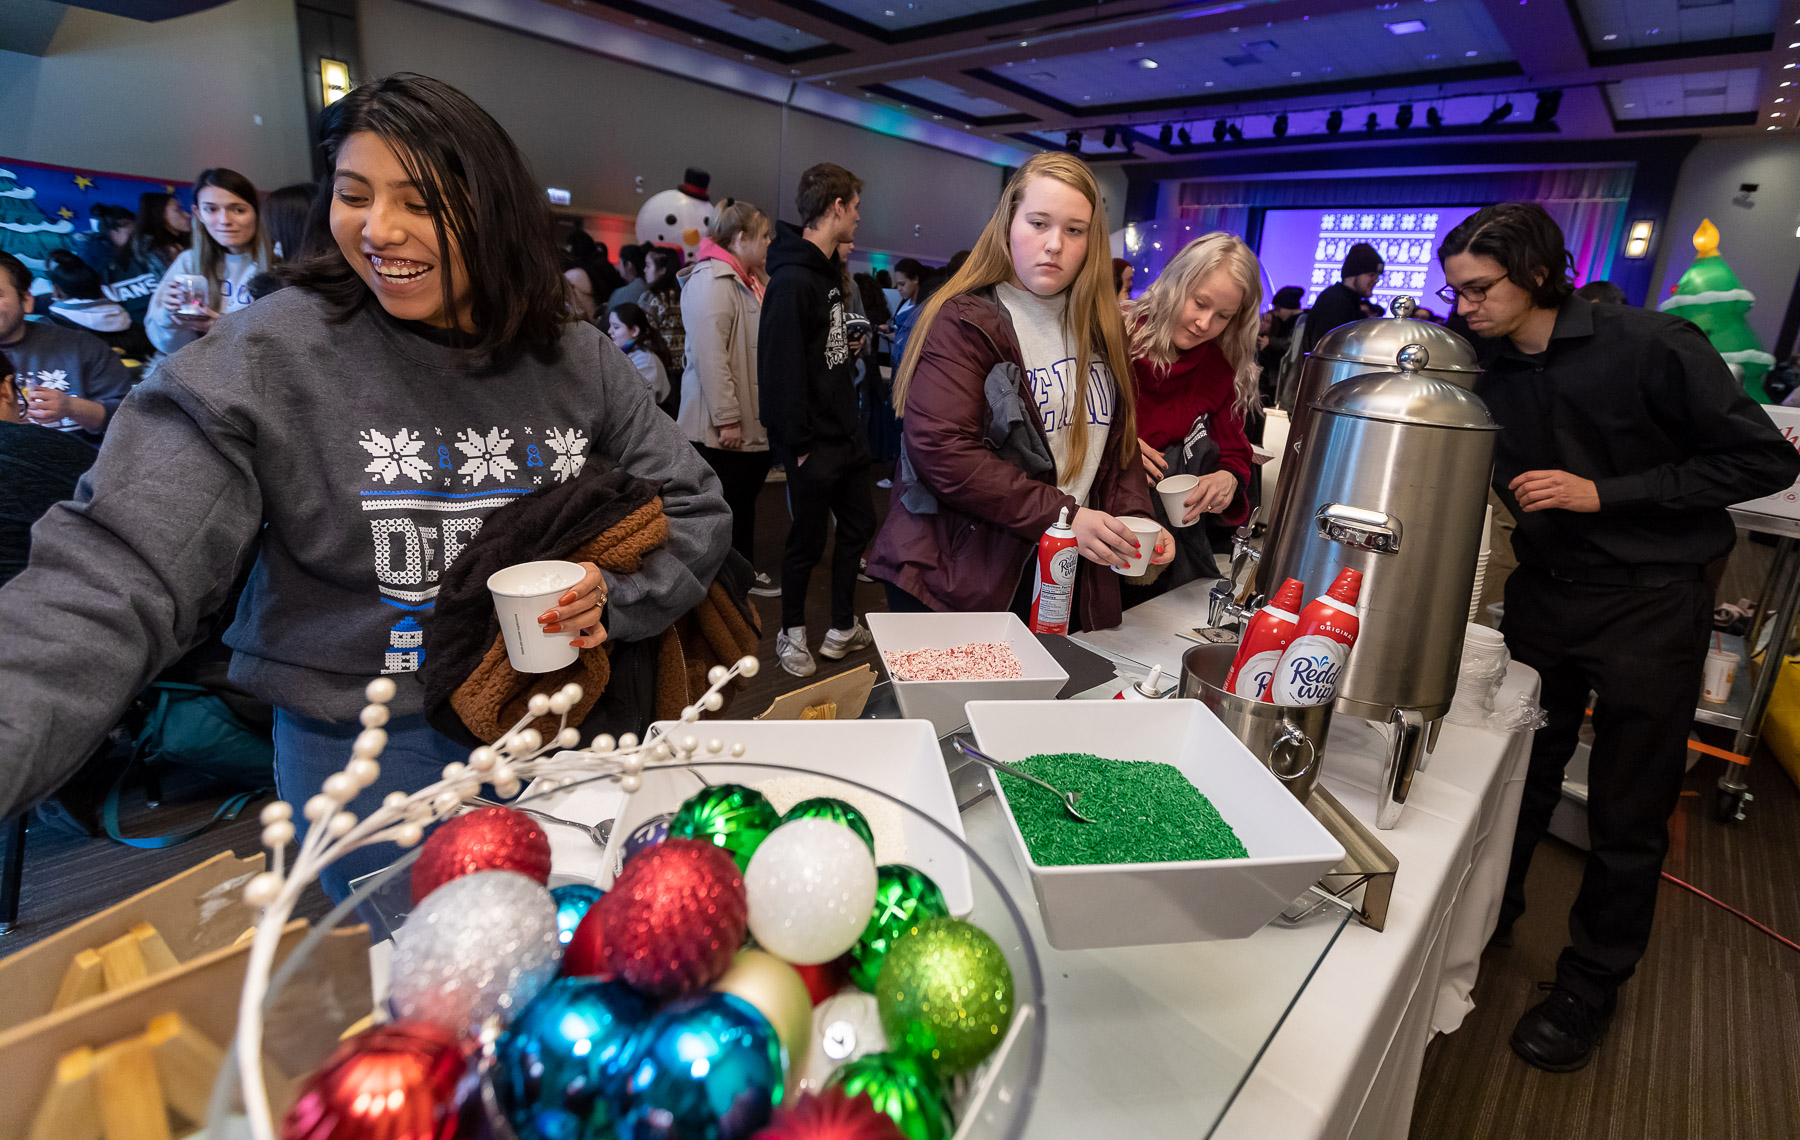 Students fill cups of hot cocoa with sweet treats. (DePaul University/Jeff Carrion)